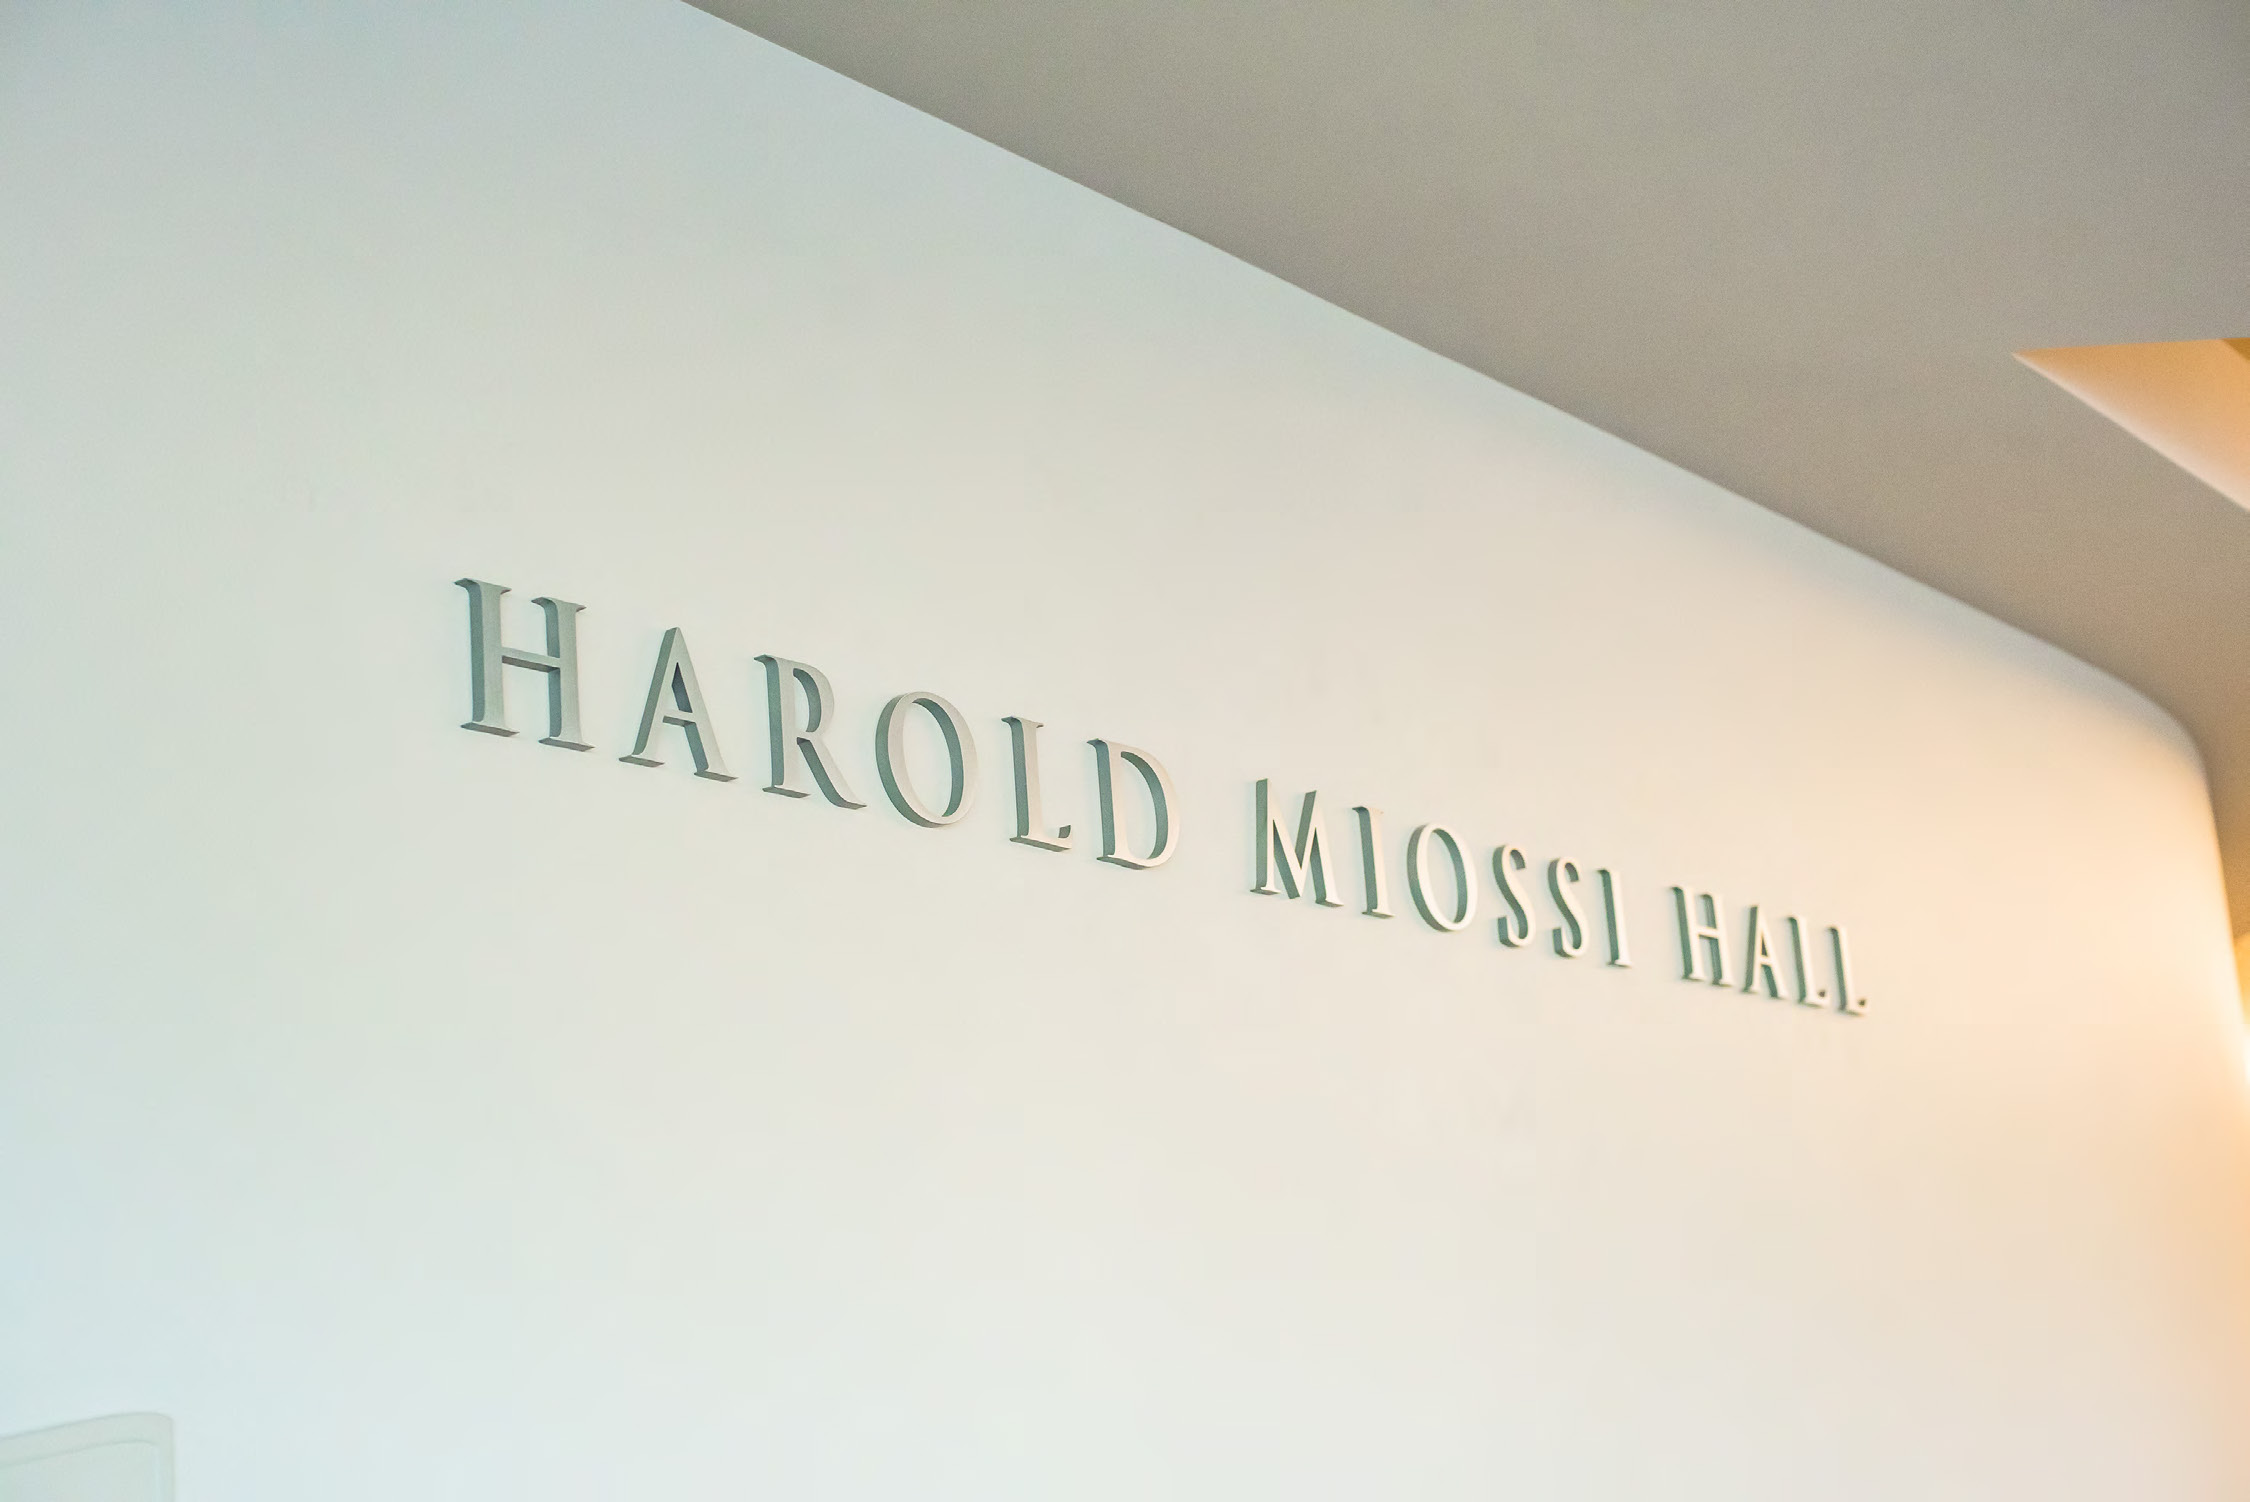 Harold Miossi Hall Sign